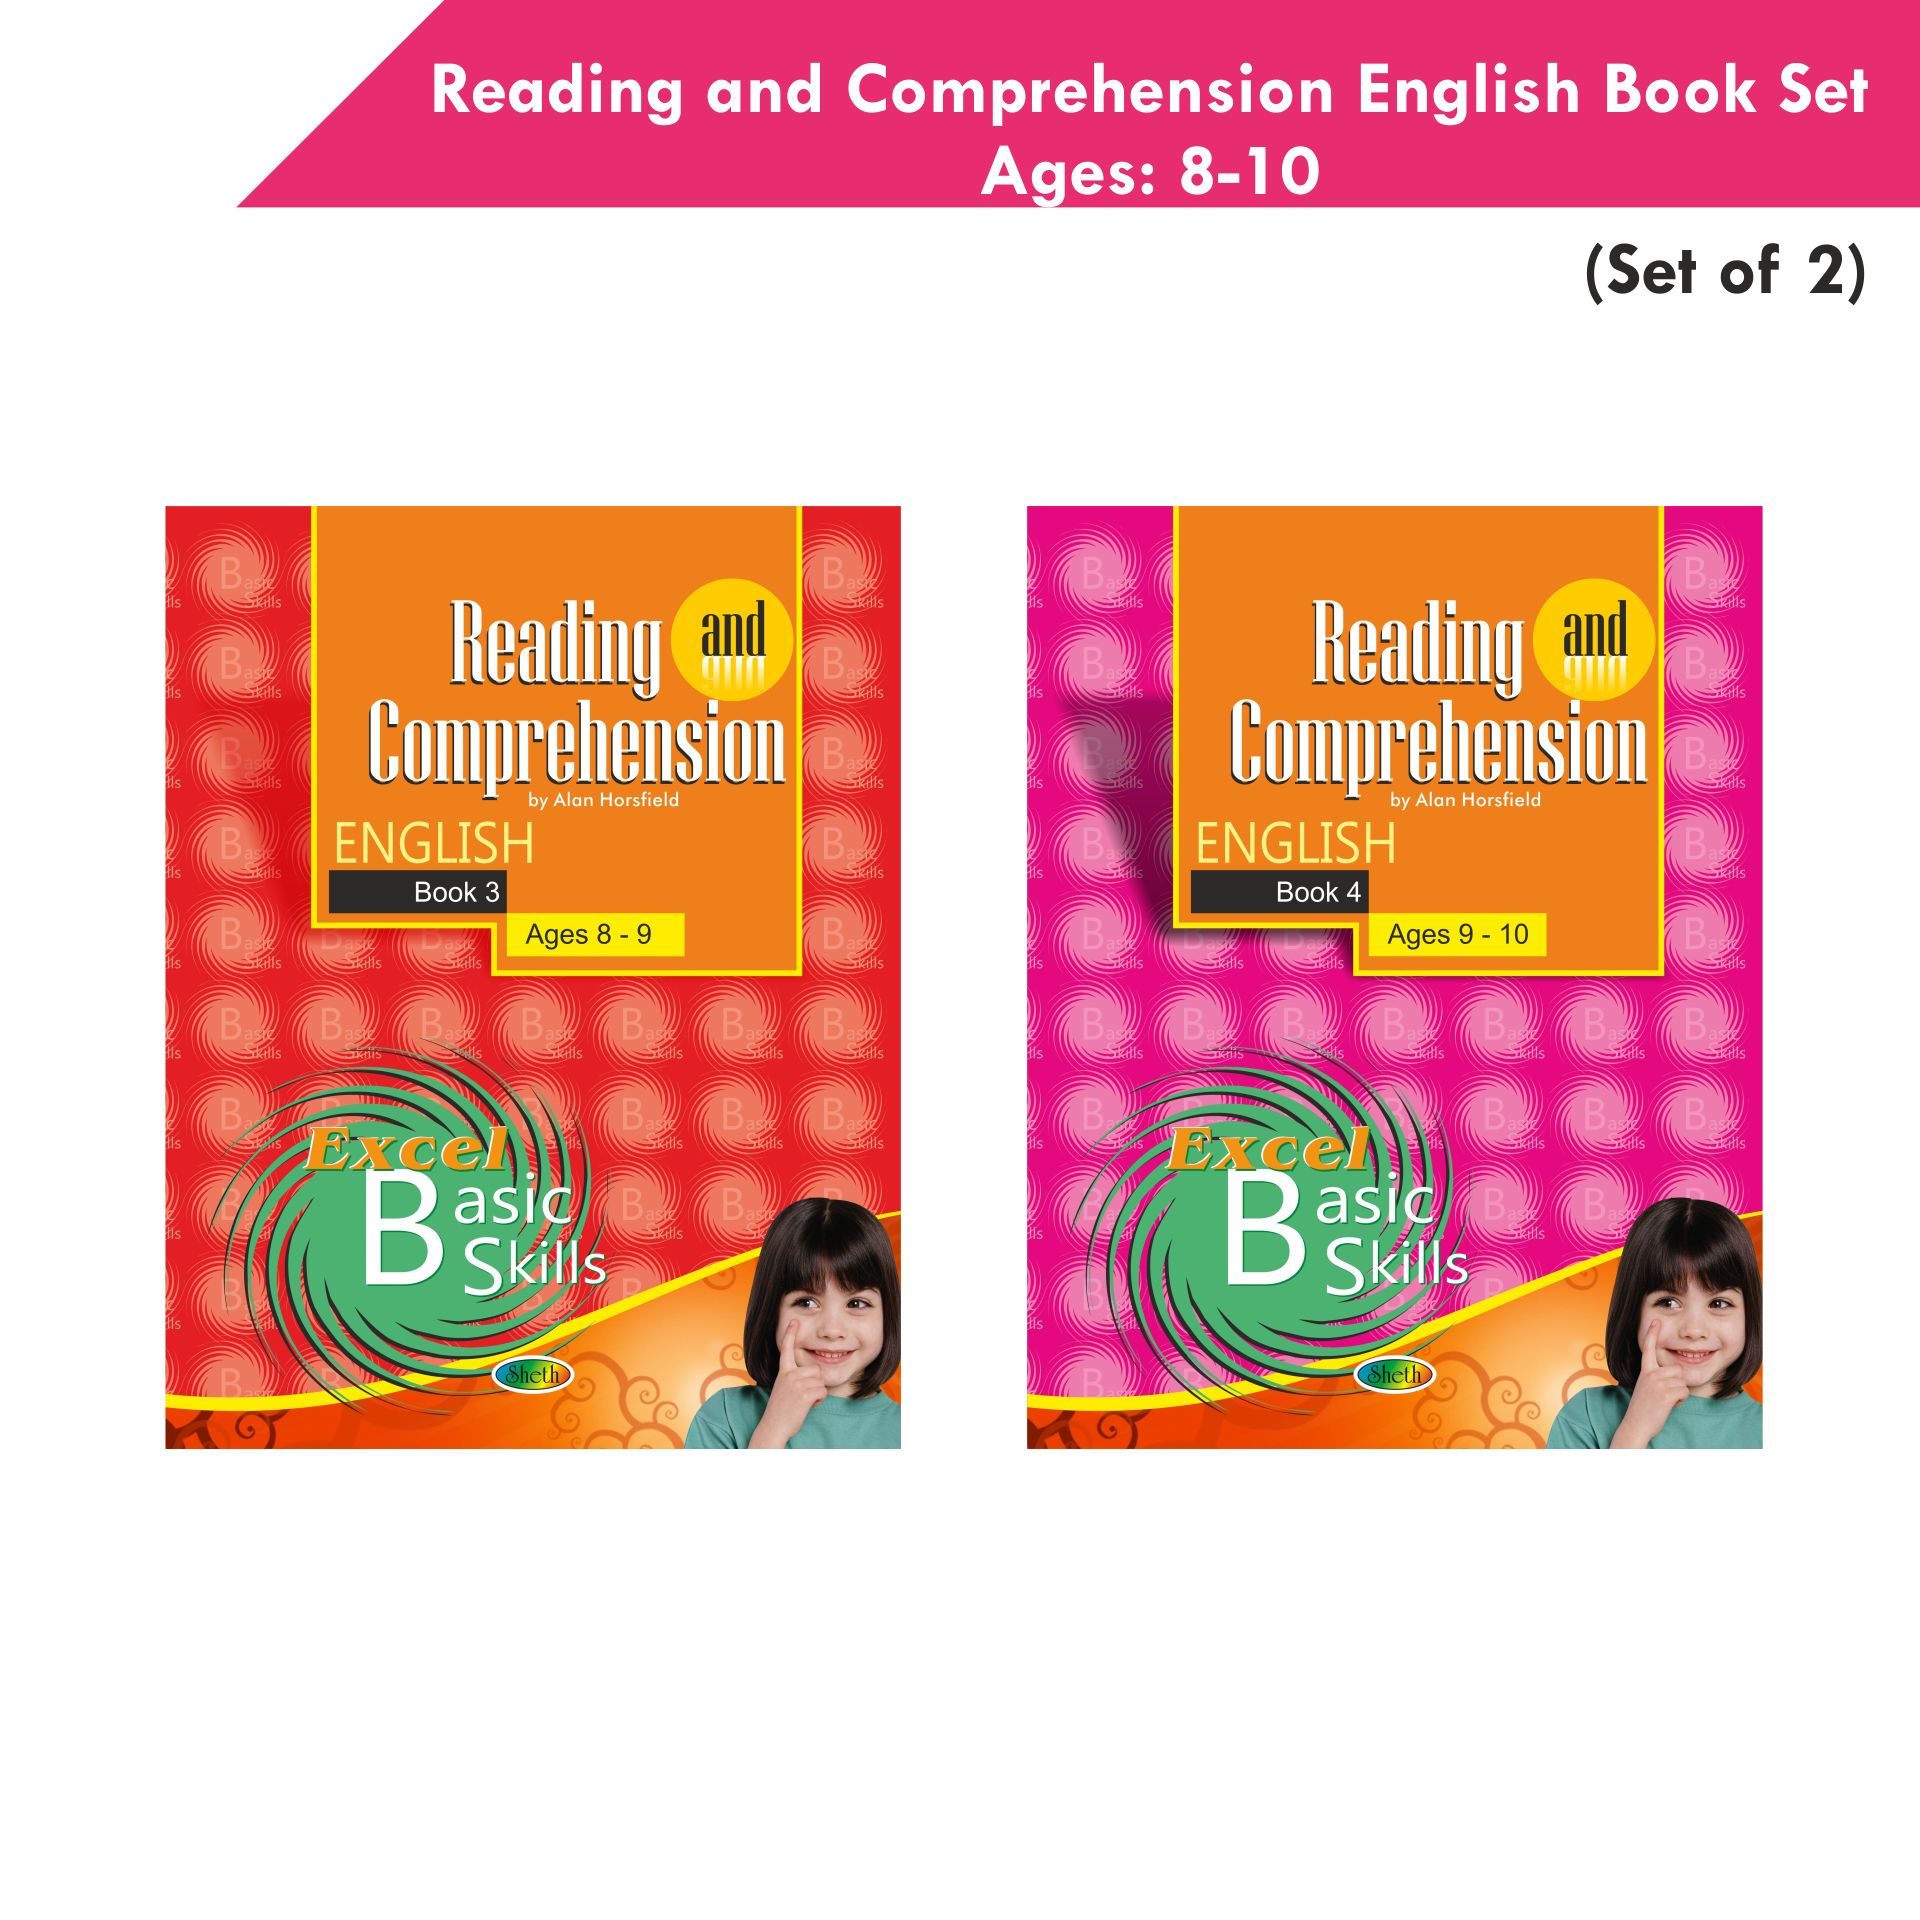 Excel Reading and Comprehension English Book Set 2 Set of 2 1